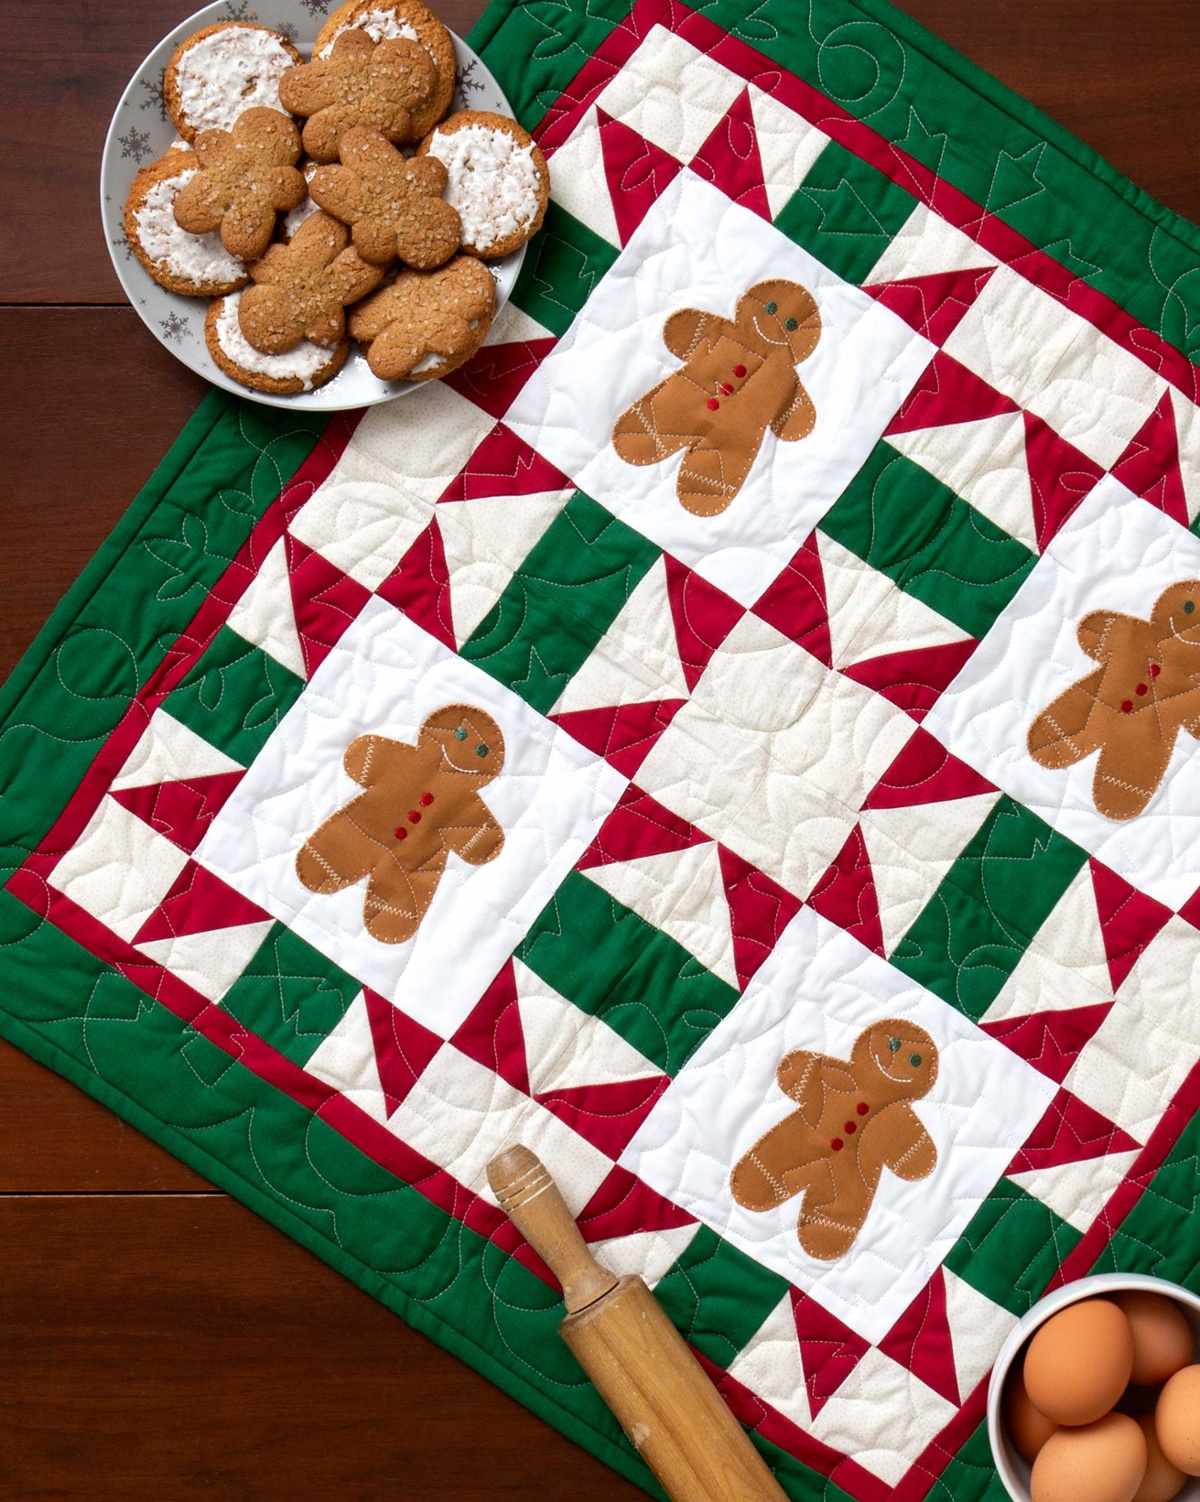 PQ11657-gingerbread-crossing-lifestyle-WEB-blog-1